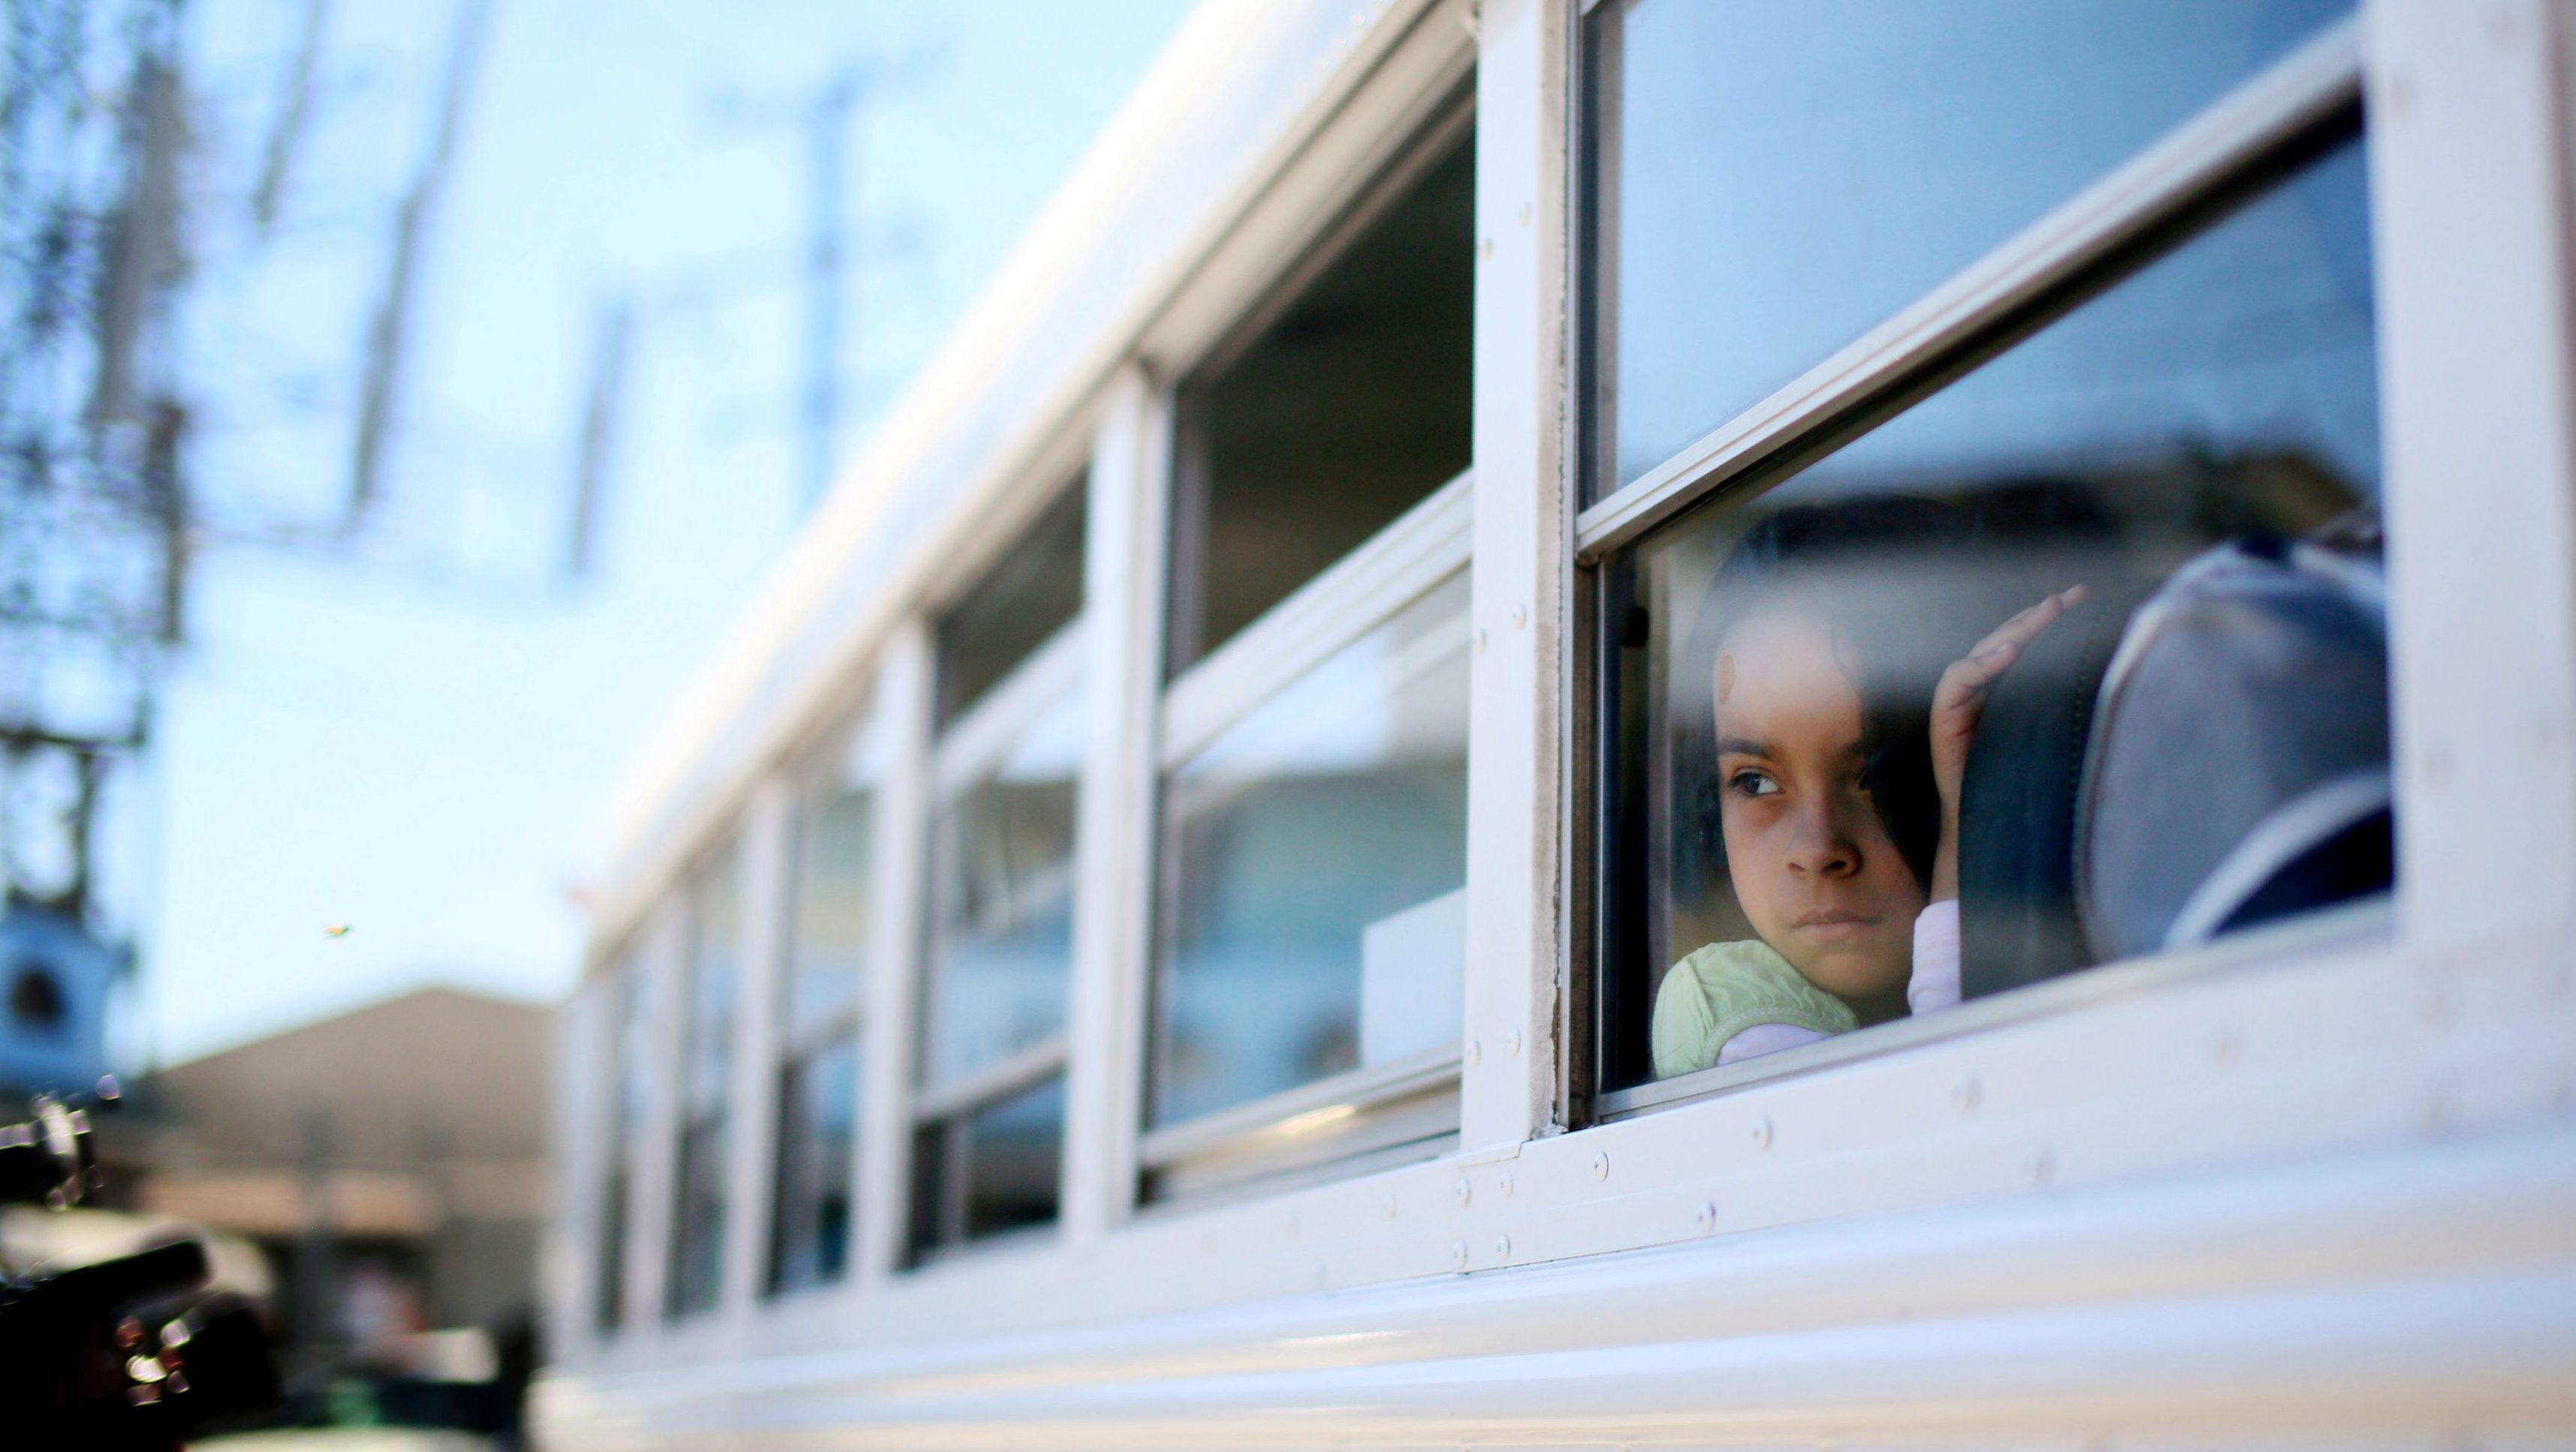 A young girl prepares to depart a bus with her parents before a protest at the U.S.-Mexico border during a Dream Act  protest in Tijuana, Mexico, March 10, 2014.  Approximately 40 protesters turned themselves in at the border in an attempt to get arrested trying to enter the United States, to bring light to deportations by the Obama administration.  REUTERS/Sandy Huffaker  (MEXICO - Tags: POLITICS SOCIETY EDUCATION CRIME LAW IMMIGRATION) - TM4EA3A1CM901